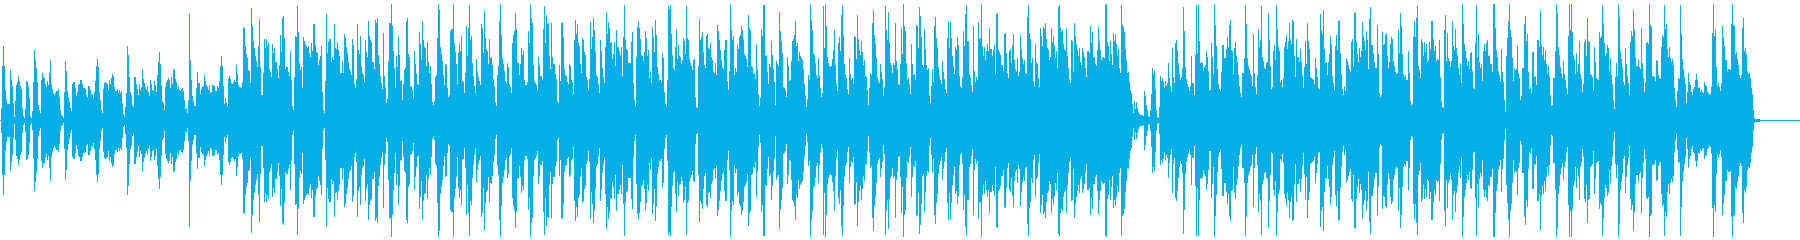 Heartwarming cute recorder and ukulele songs's reproduced waveform